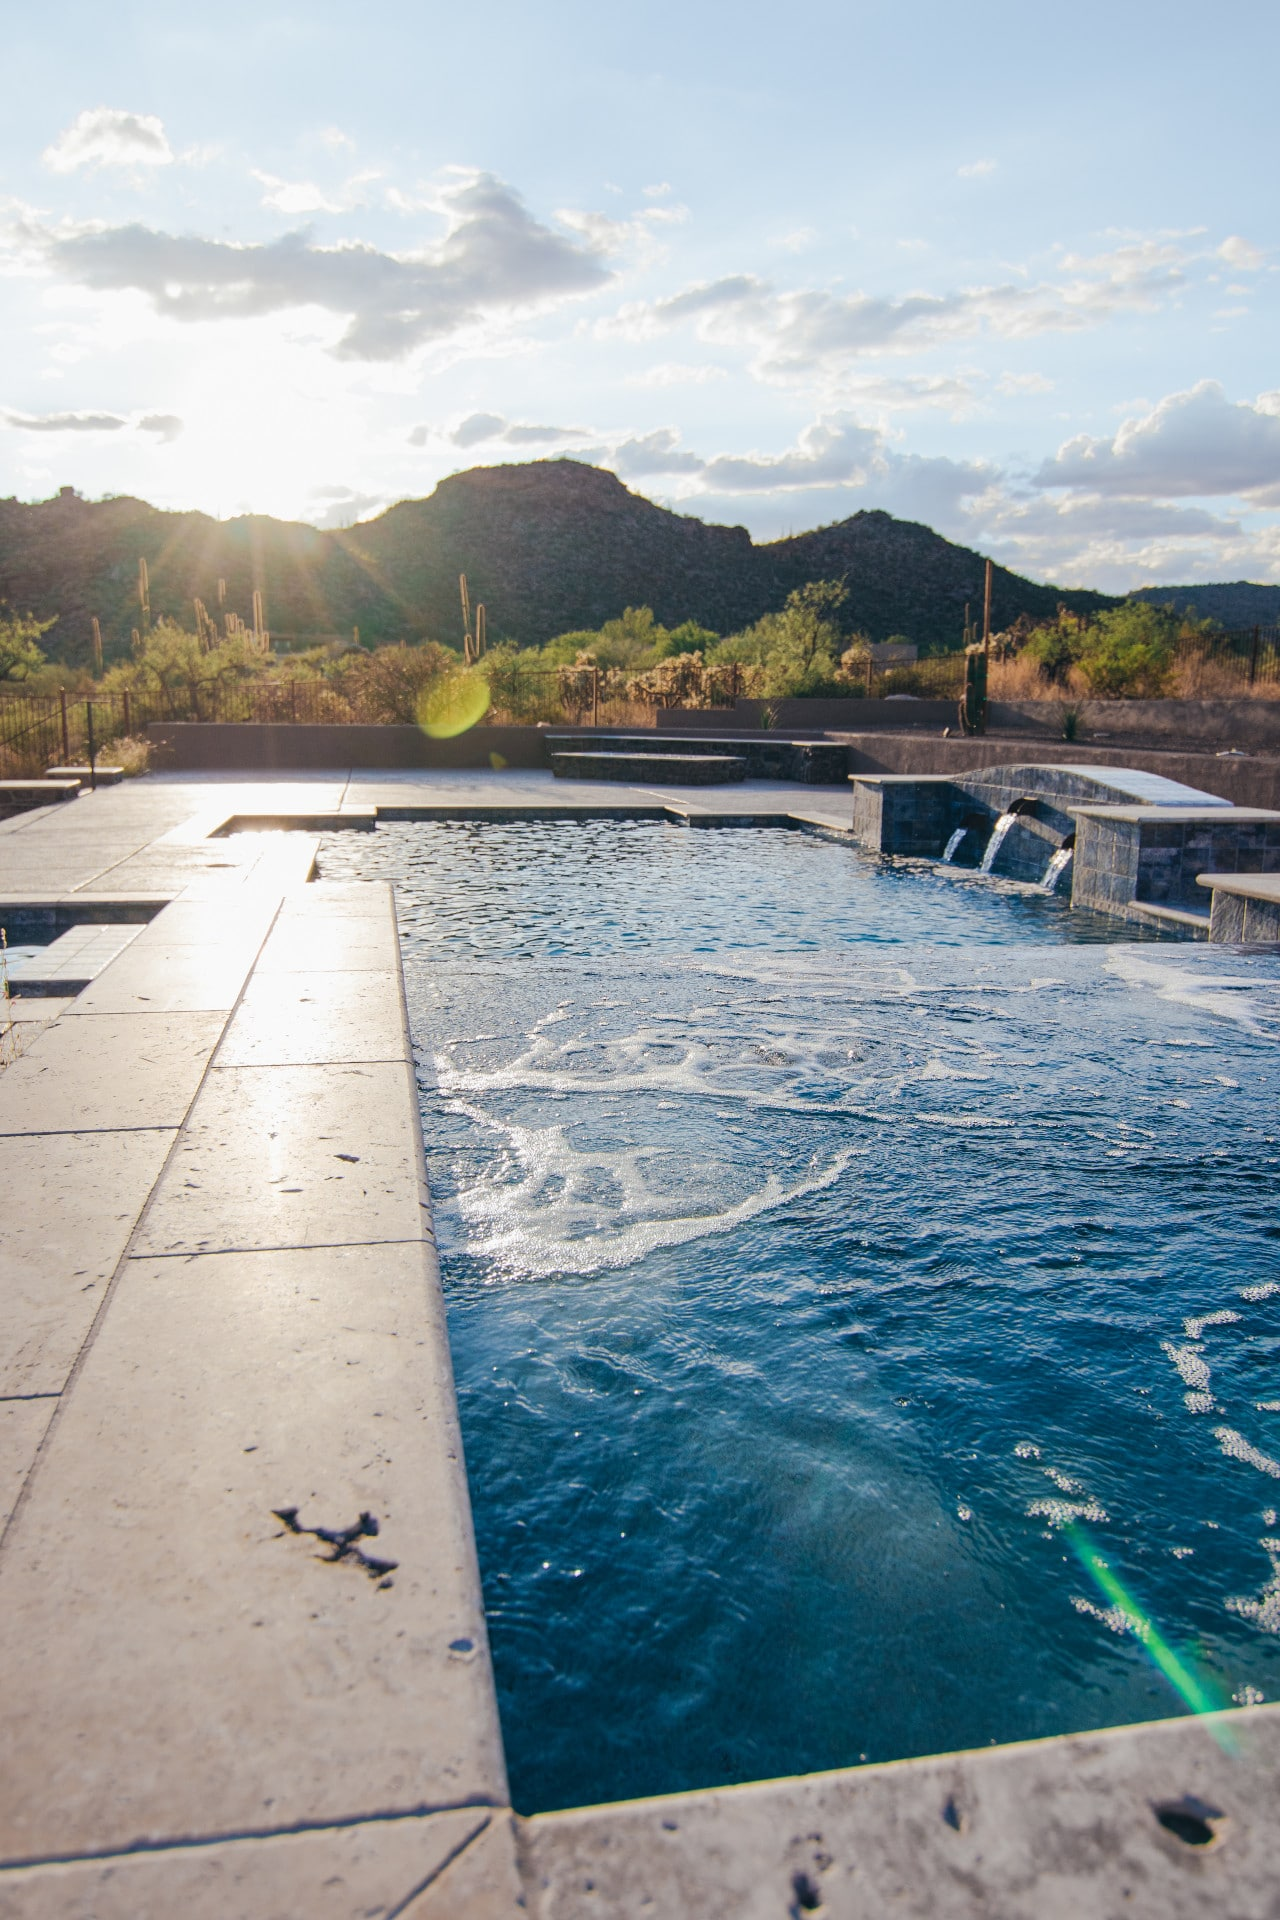 Closeup of a spillover spa next to the pool with sun shining in the background over the mountains